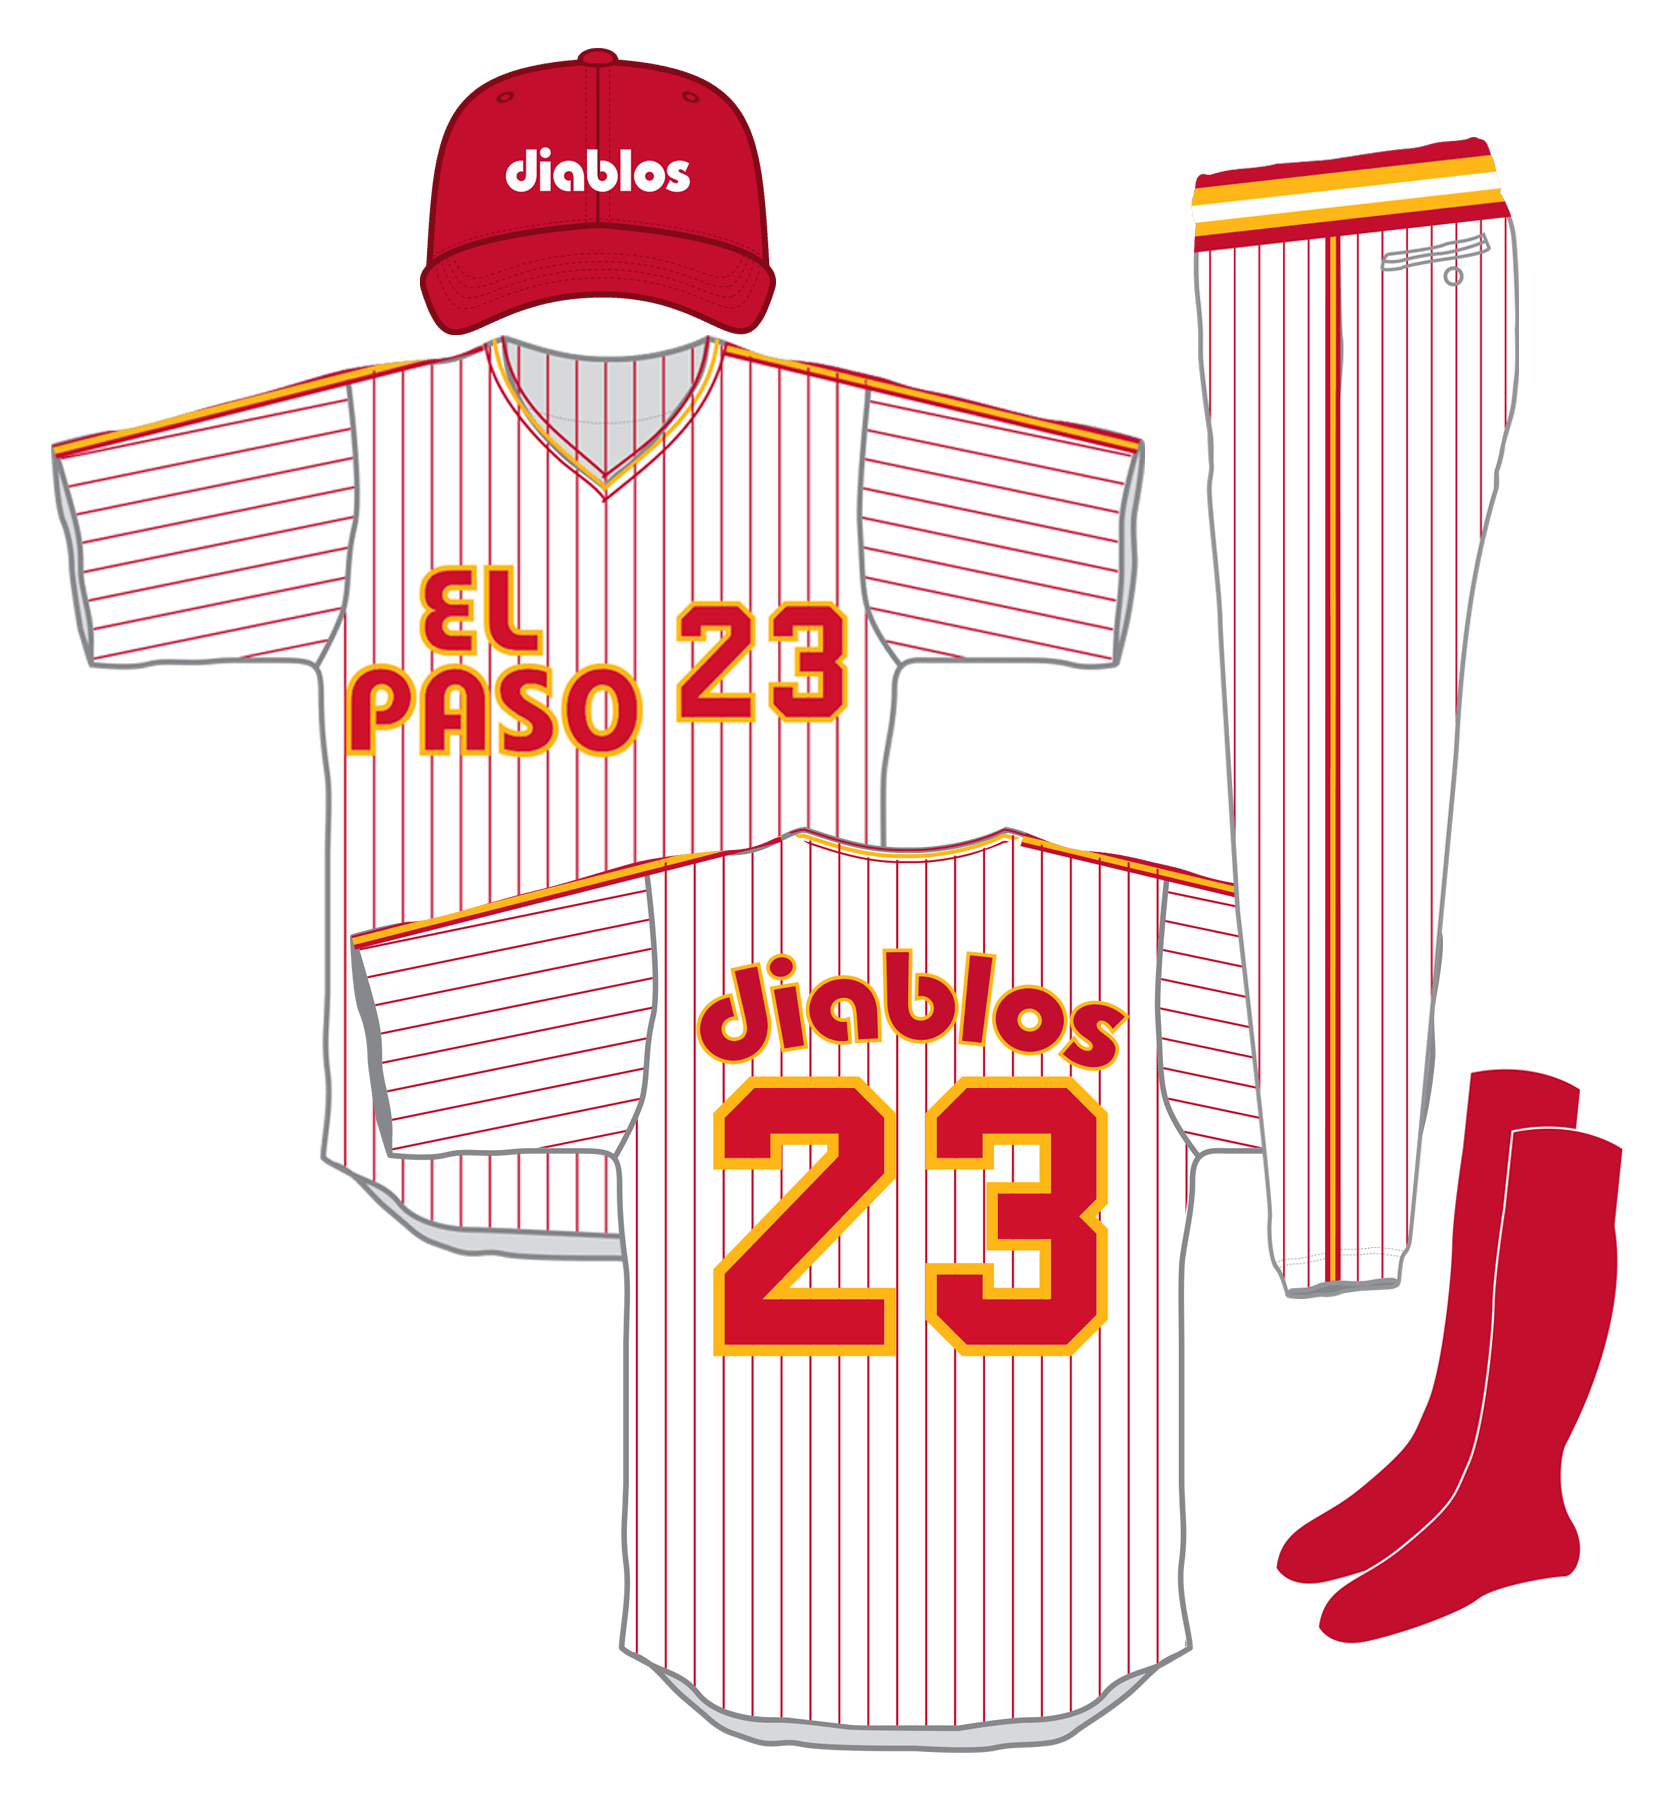 Baseball uniform clipart clip free library Wednesday, El Paso Diablos day - MOSAE SPORTS - Baseball and ... clip free library